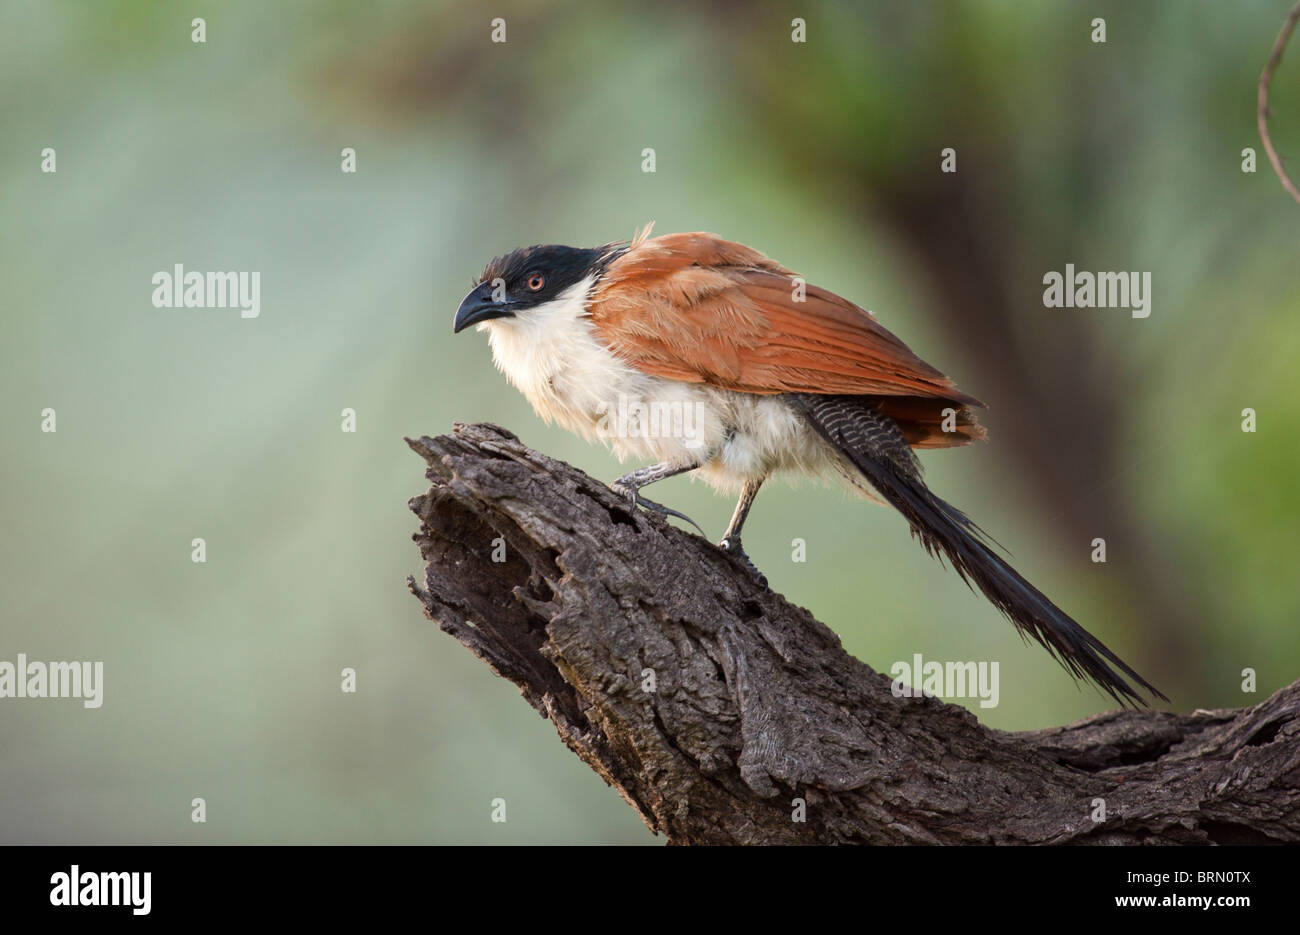 Burchell's Coucal perched on a dry branch - Stock Image